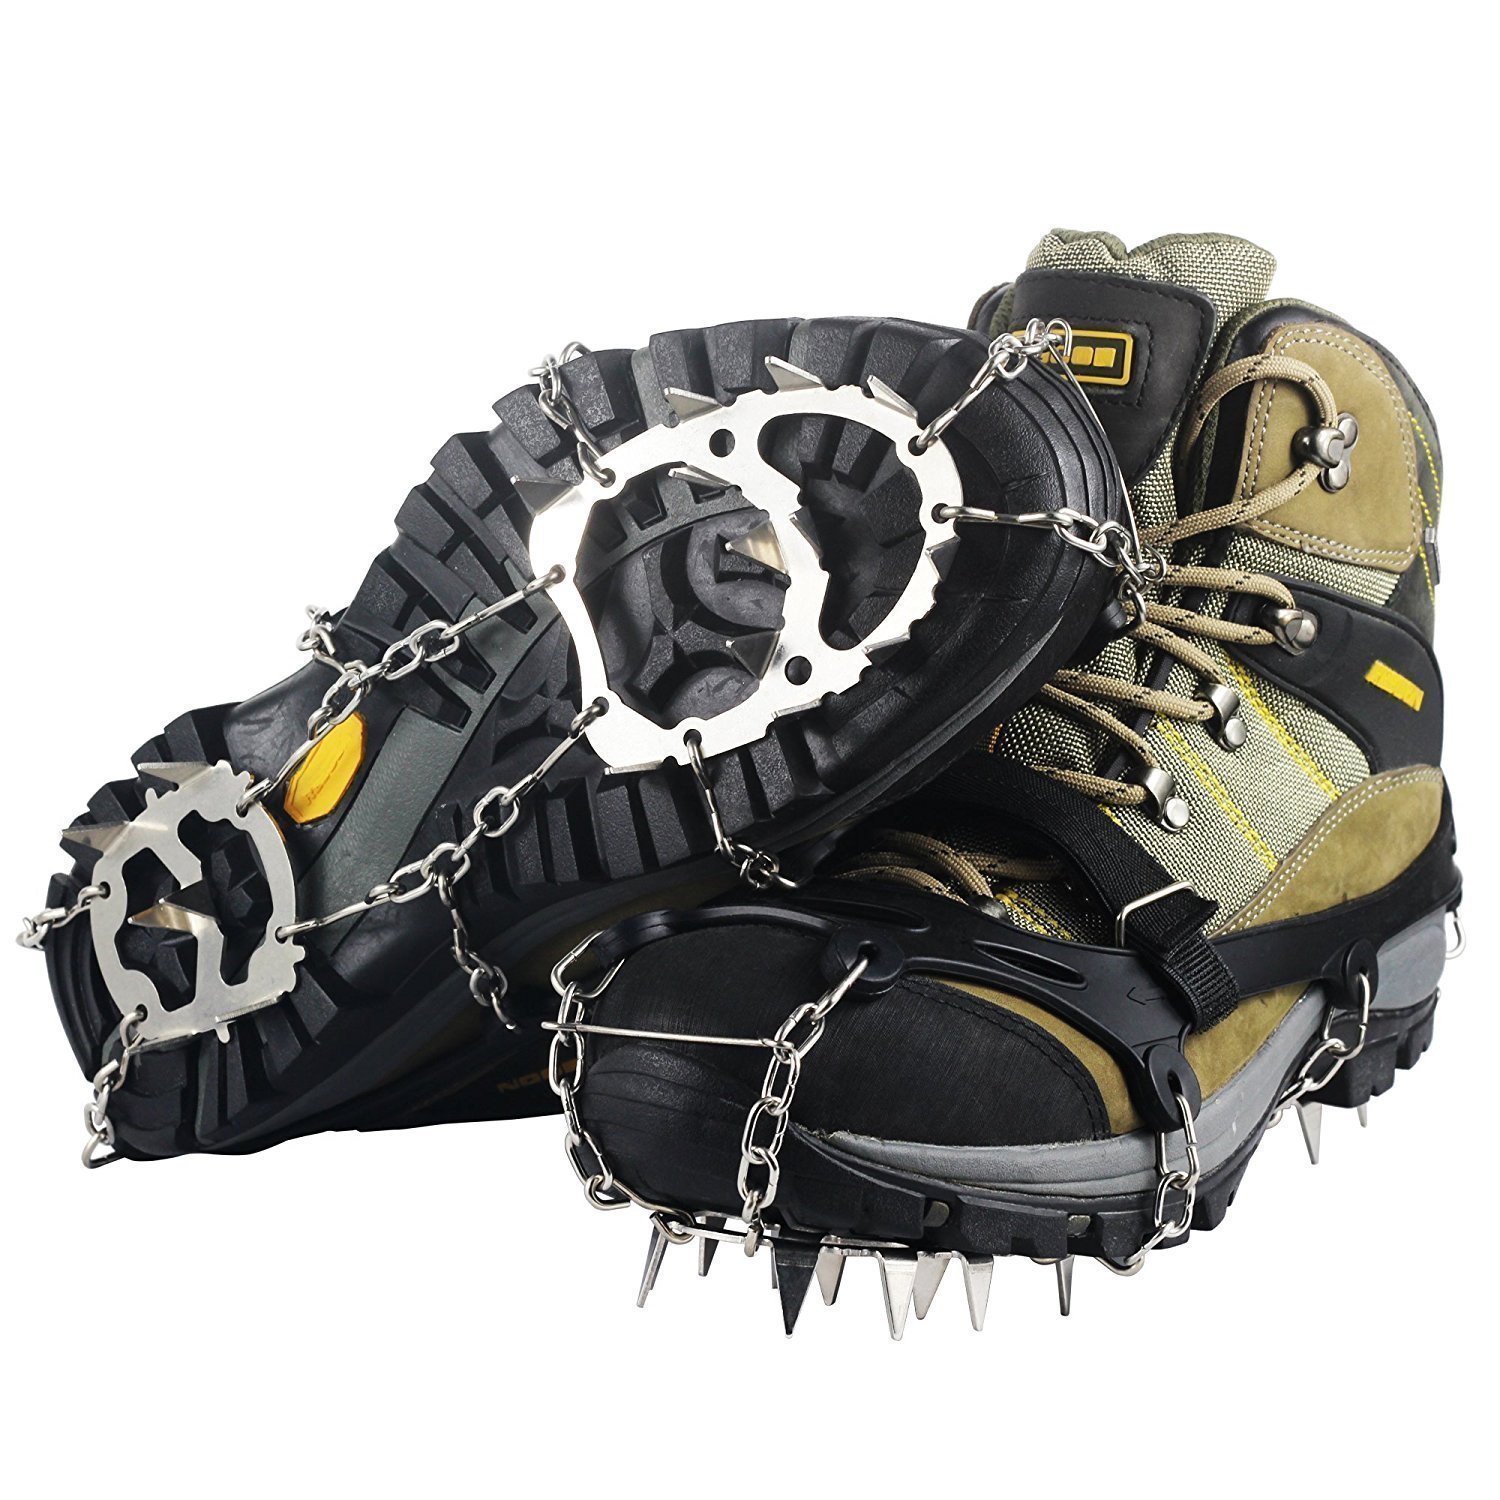 Ice Cleats, YDI Snow Spikes Crampons Unisex Anti Slip Shoes Grippers with 18 Teeth Stainless Steel for Winter Walking Hiking Mountaineering, Size M/L/XL